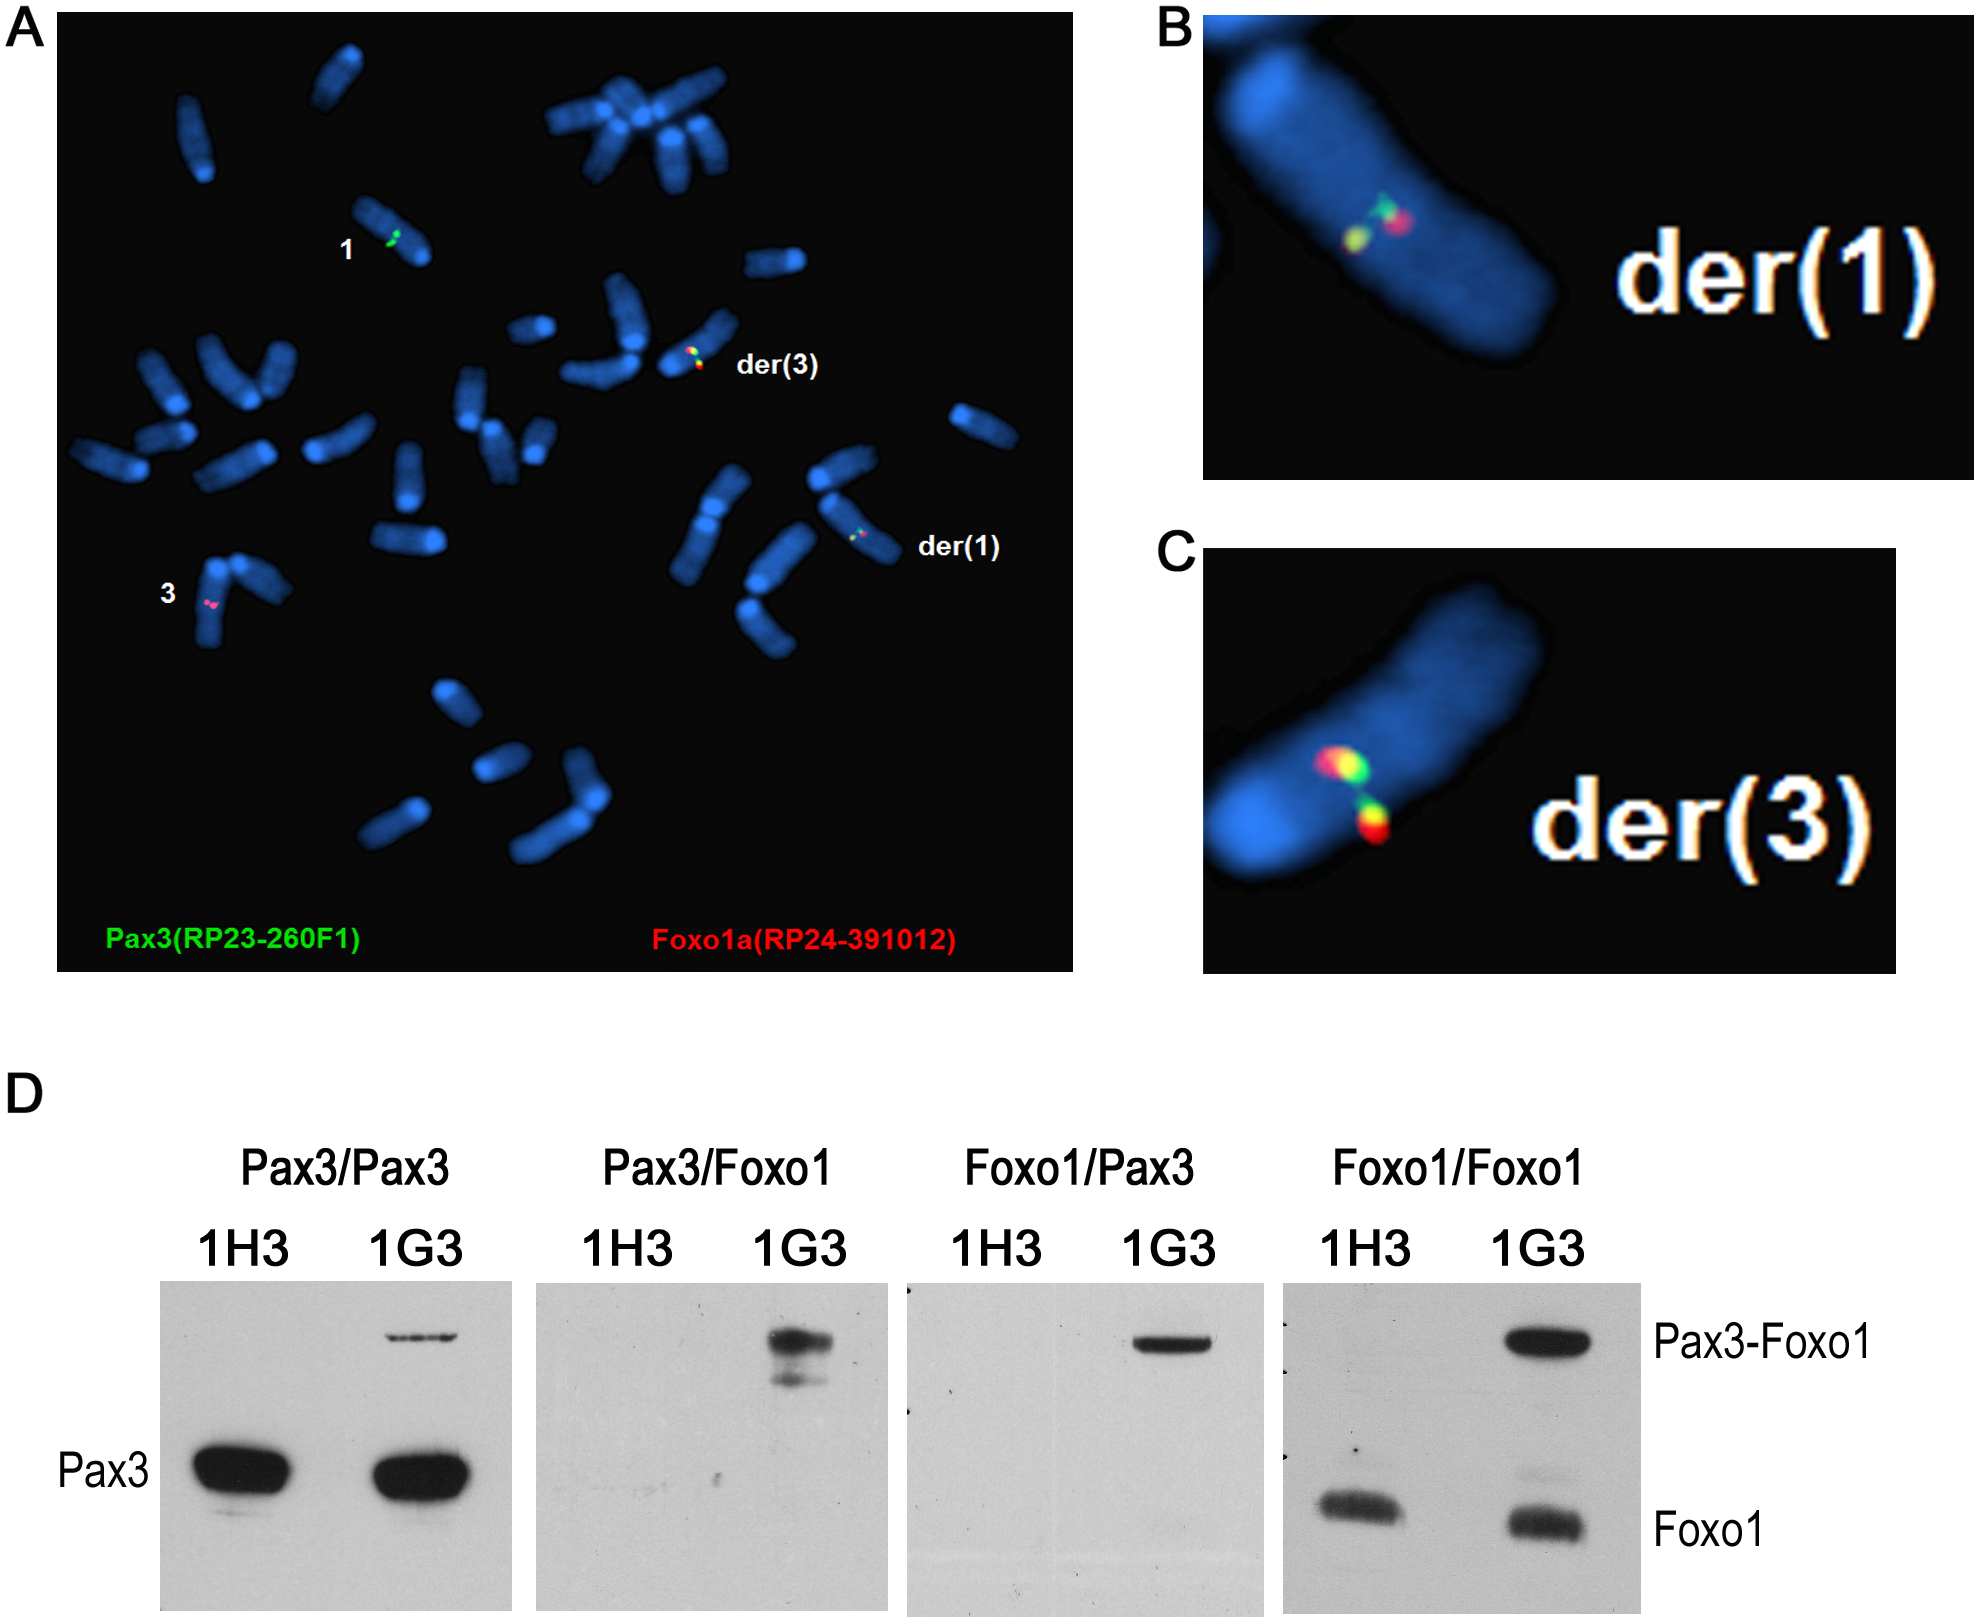 The reciprocal t(1;3) in myoblasts expresses Pax3-Foxo1 protein, which upregulates target gene expression.